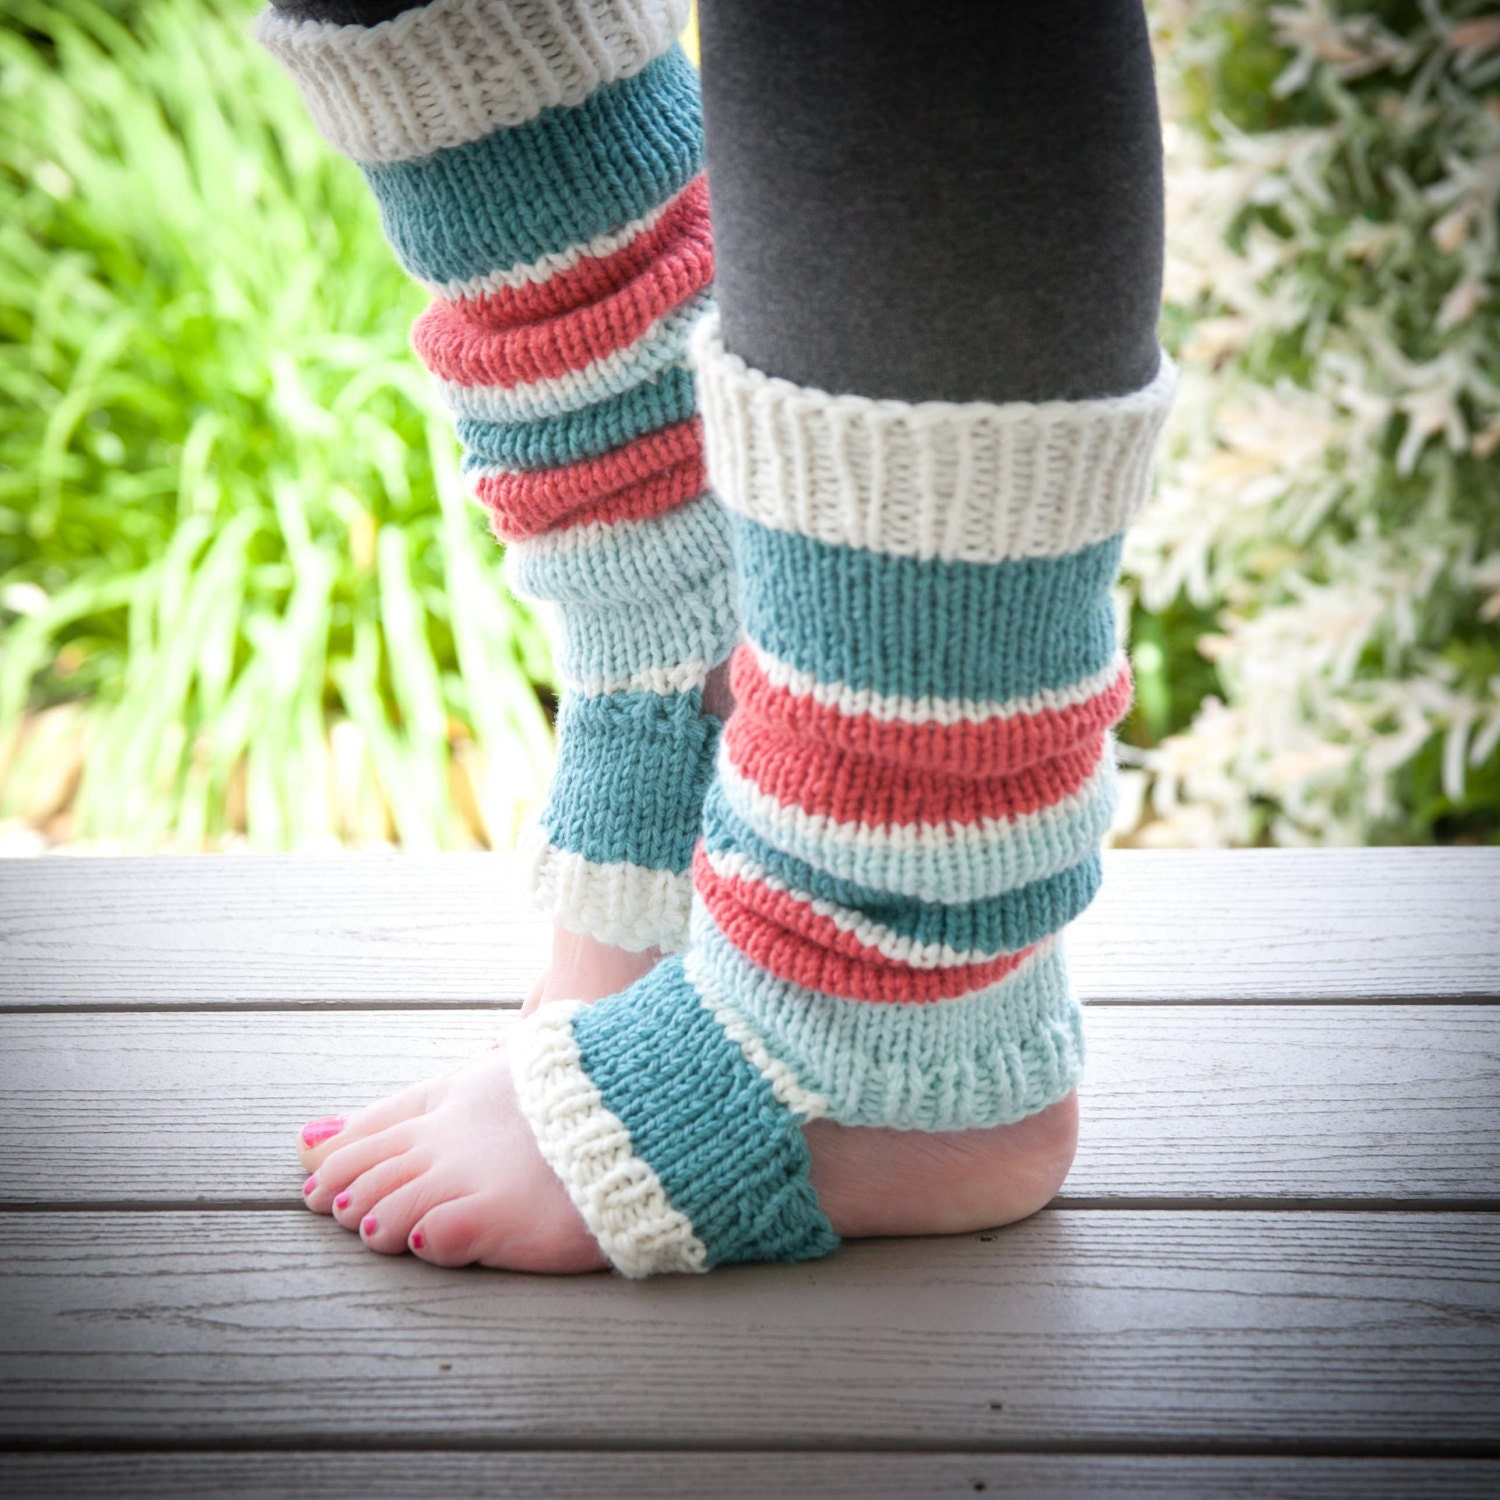 Loom Knitting Pattern For Leg Warmers : Loom knit legwarmer PATTERN loom knit yoga legwarmers loom